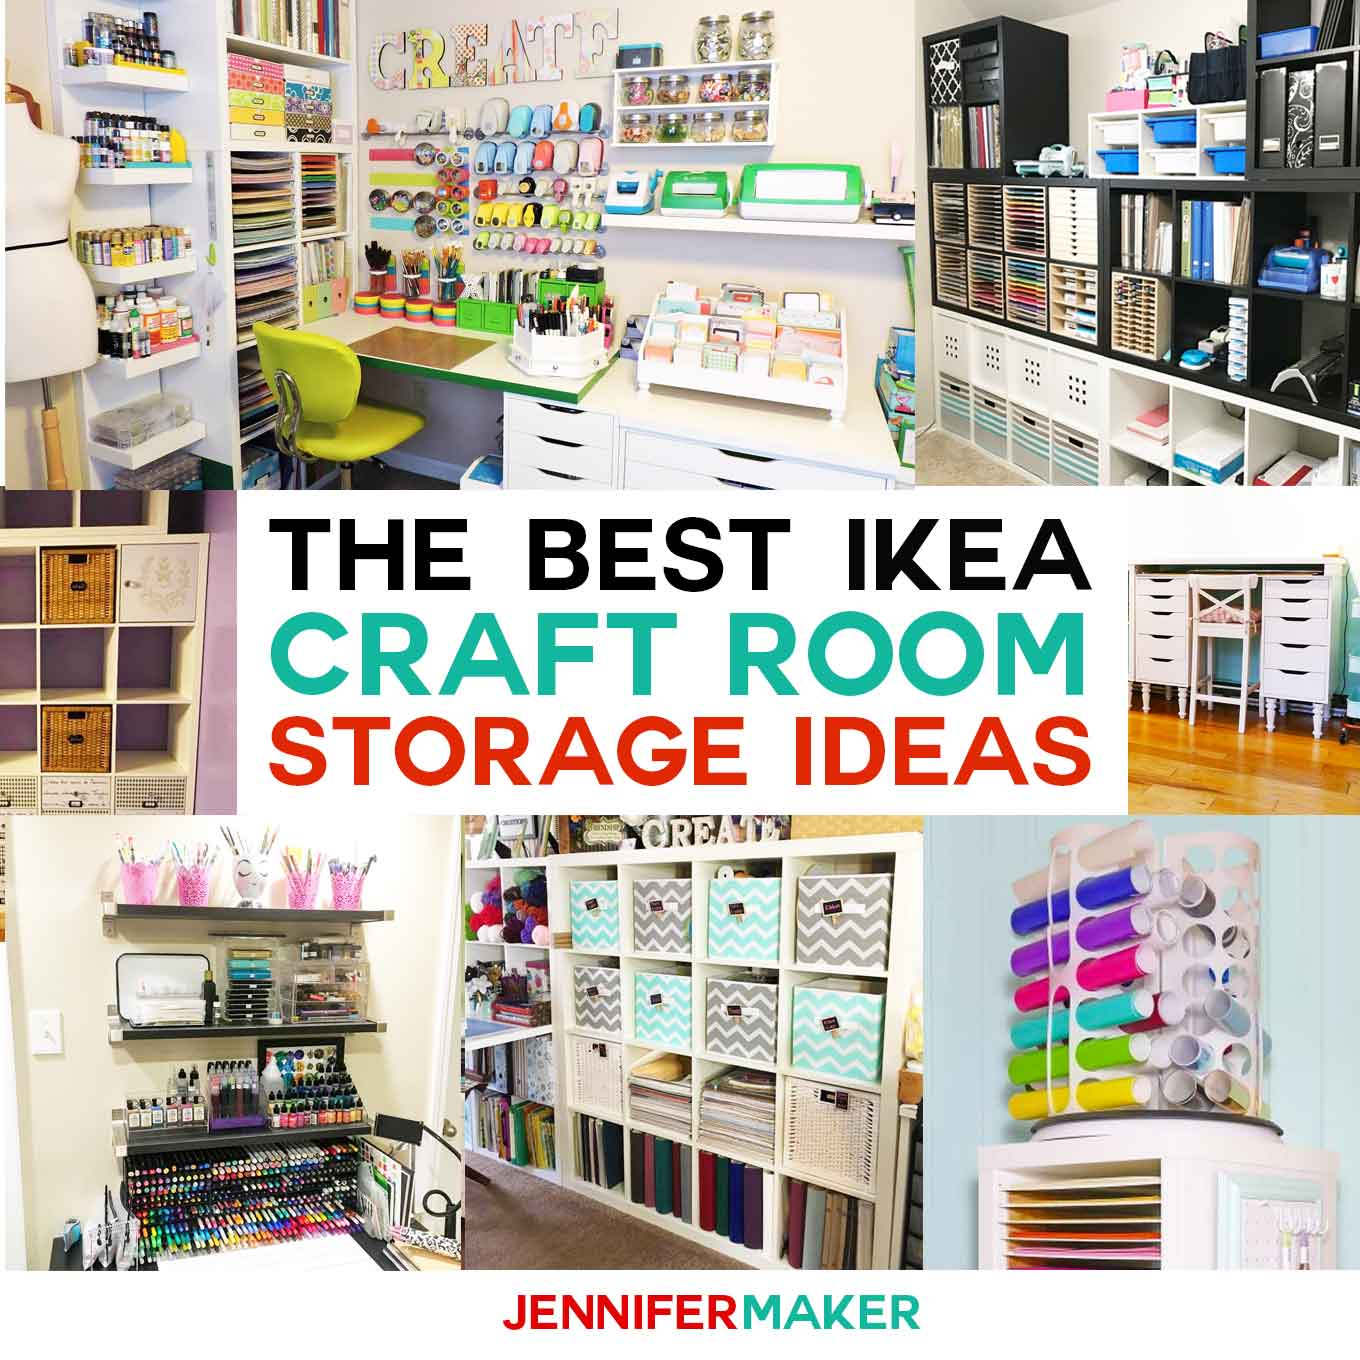 The Best Ikea Craft Room Storage Shelves Ideas Jennifer Maker